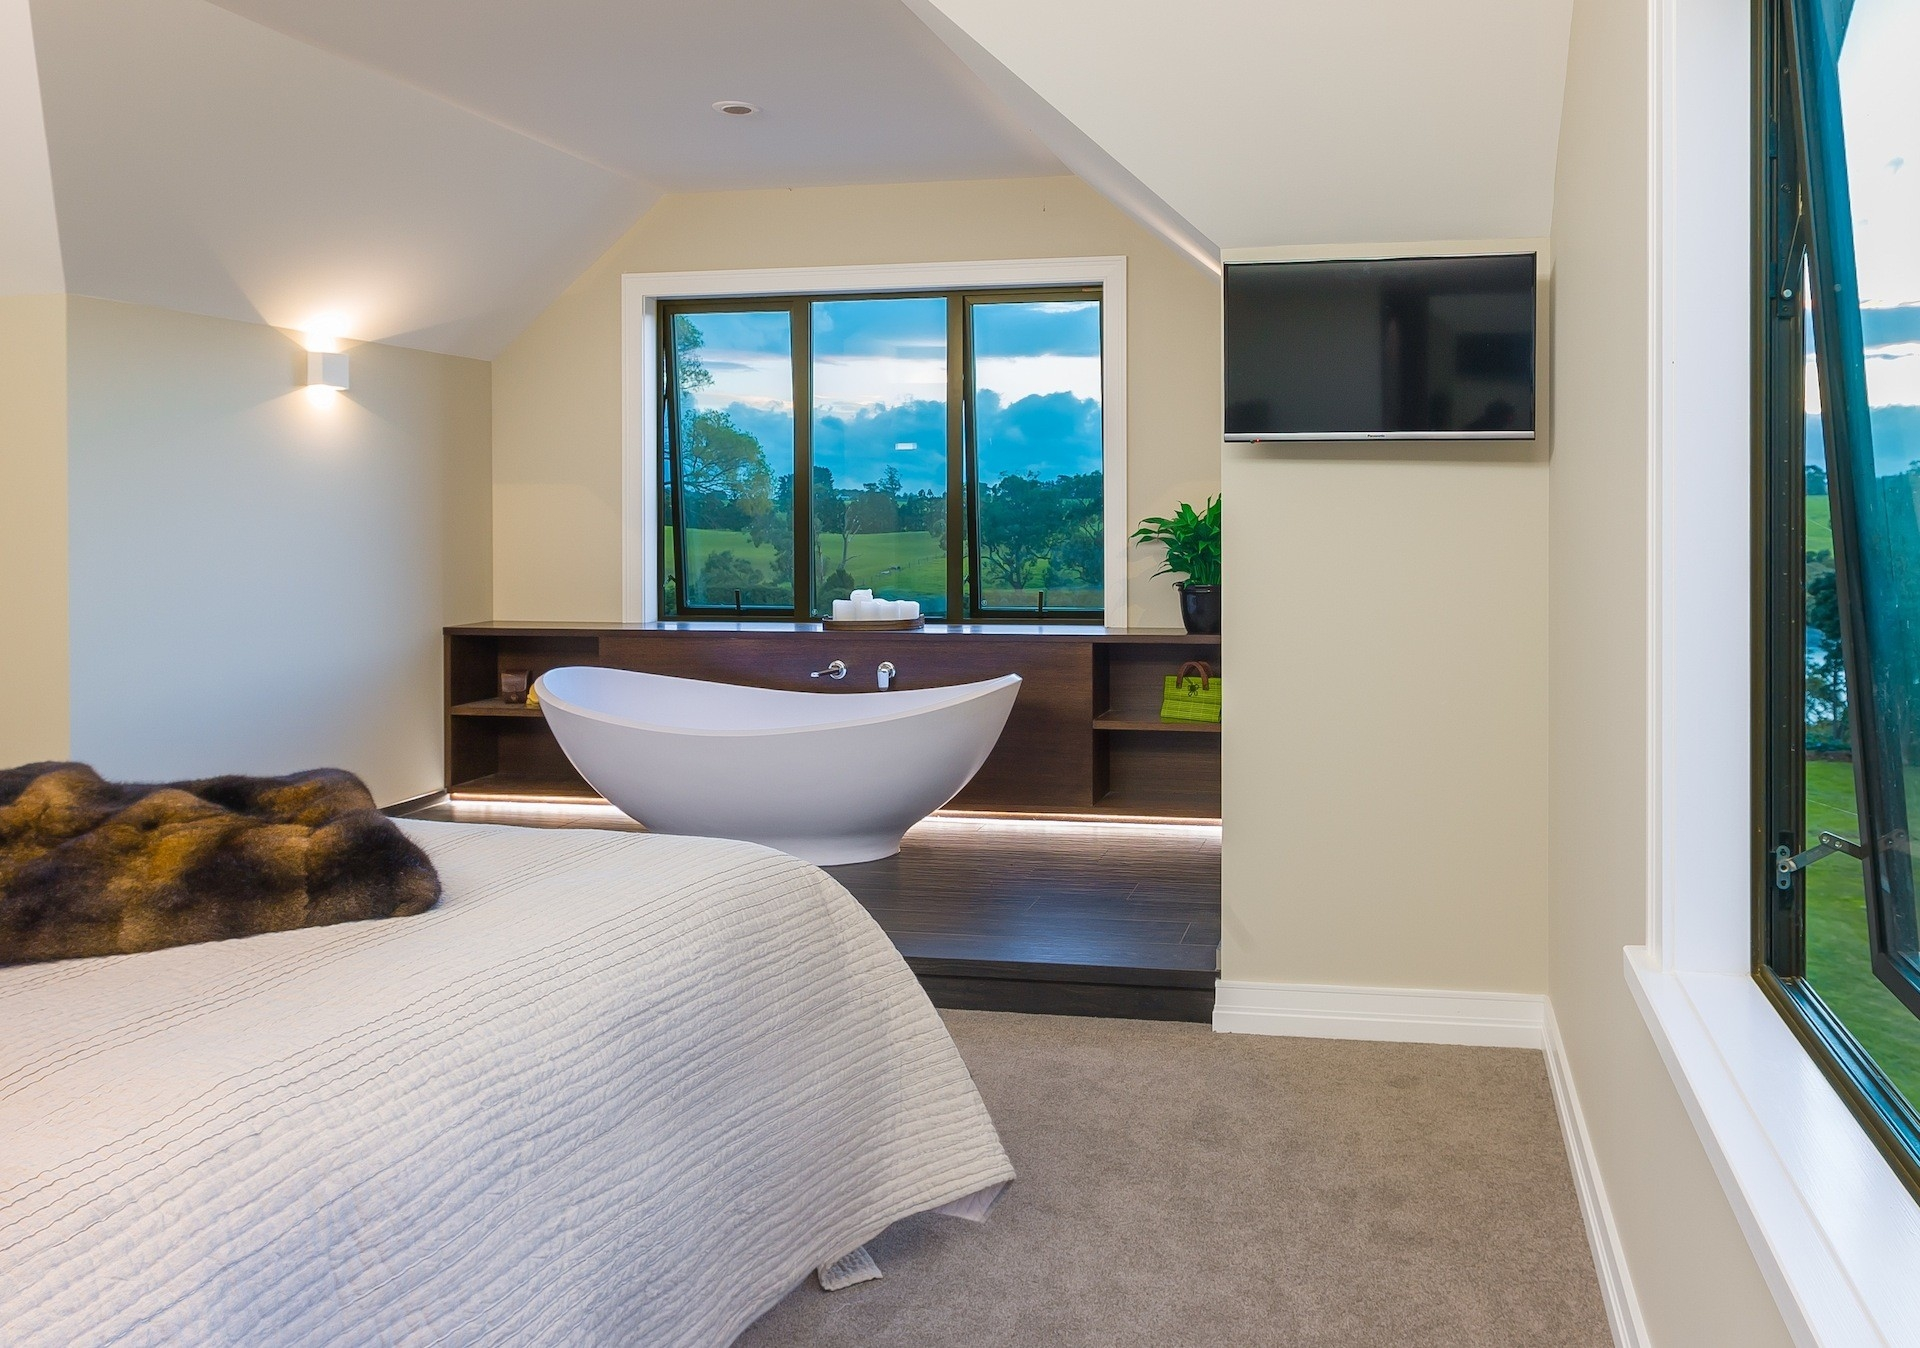 The design of this master suite takes  full advantage of the rural views  by placing a beautifully shaped freestanding bath central to the window, on a tiled plinth, at the foot of the bed